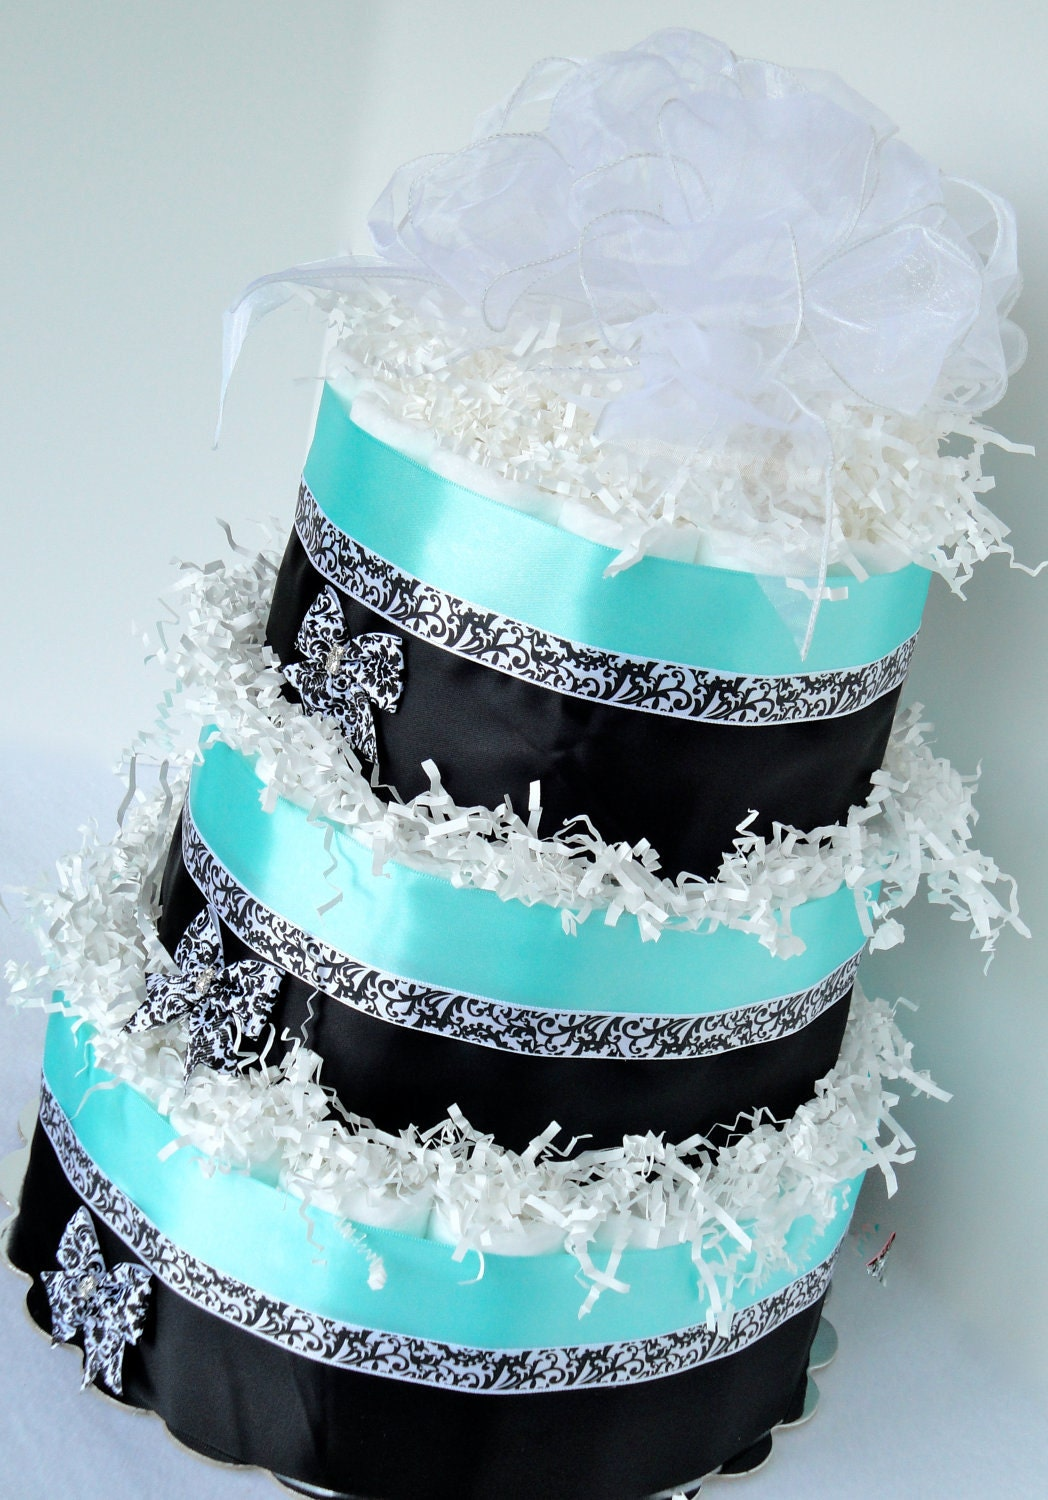 Satin Inspired Cake With Bows Hot Girls Wallpaper